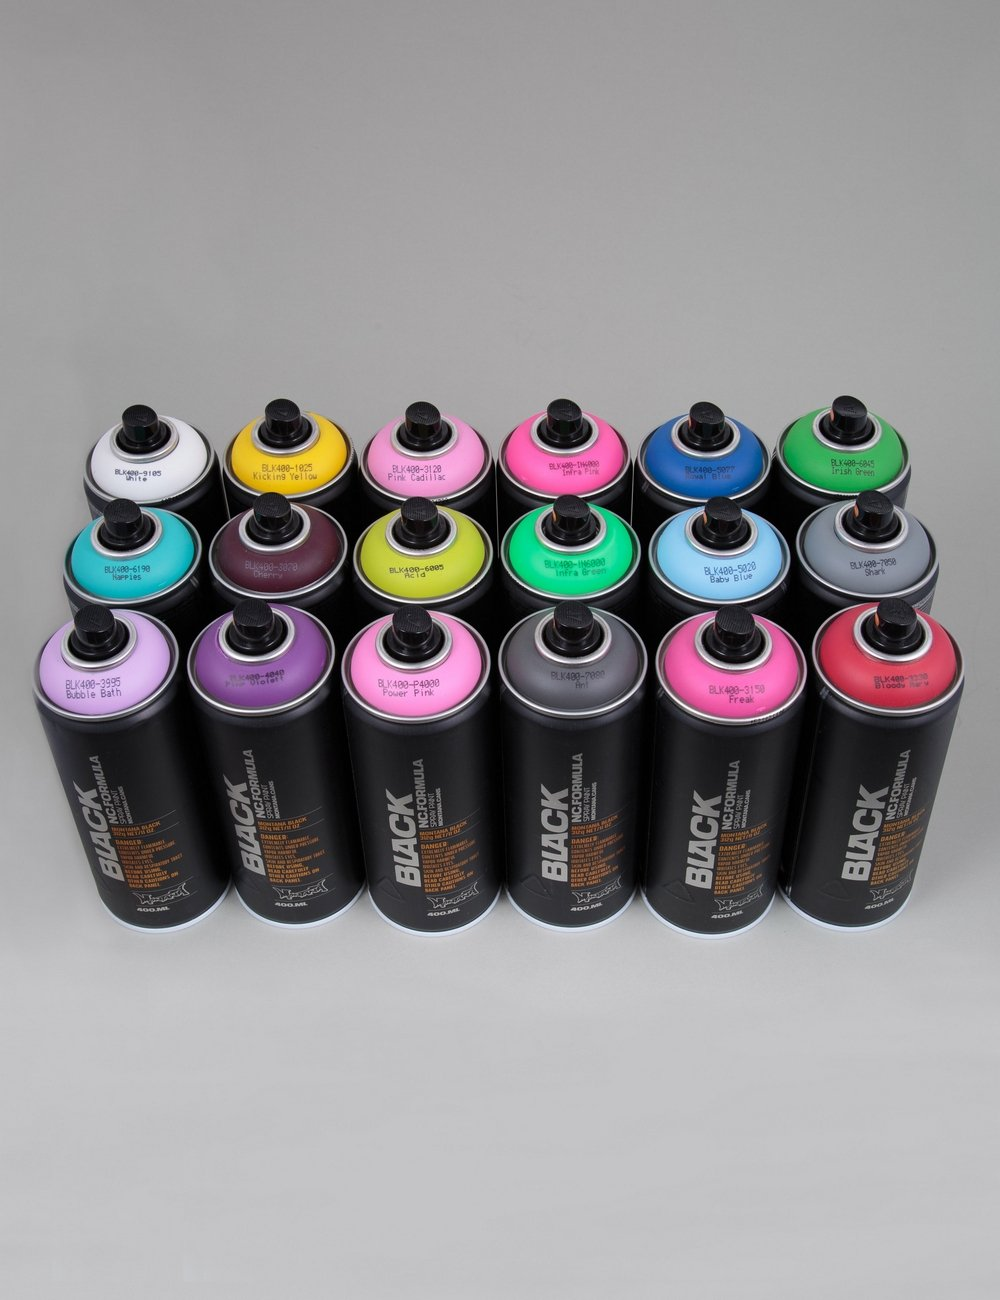 Montana black spray paint deal 18 cans spray paint supplies from iconsume uk Spray paint supplies